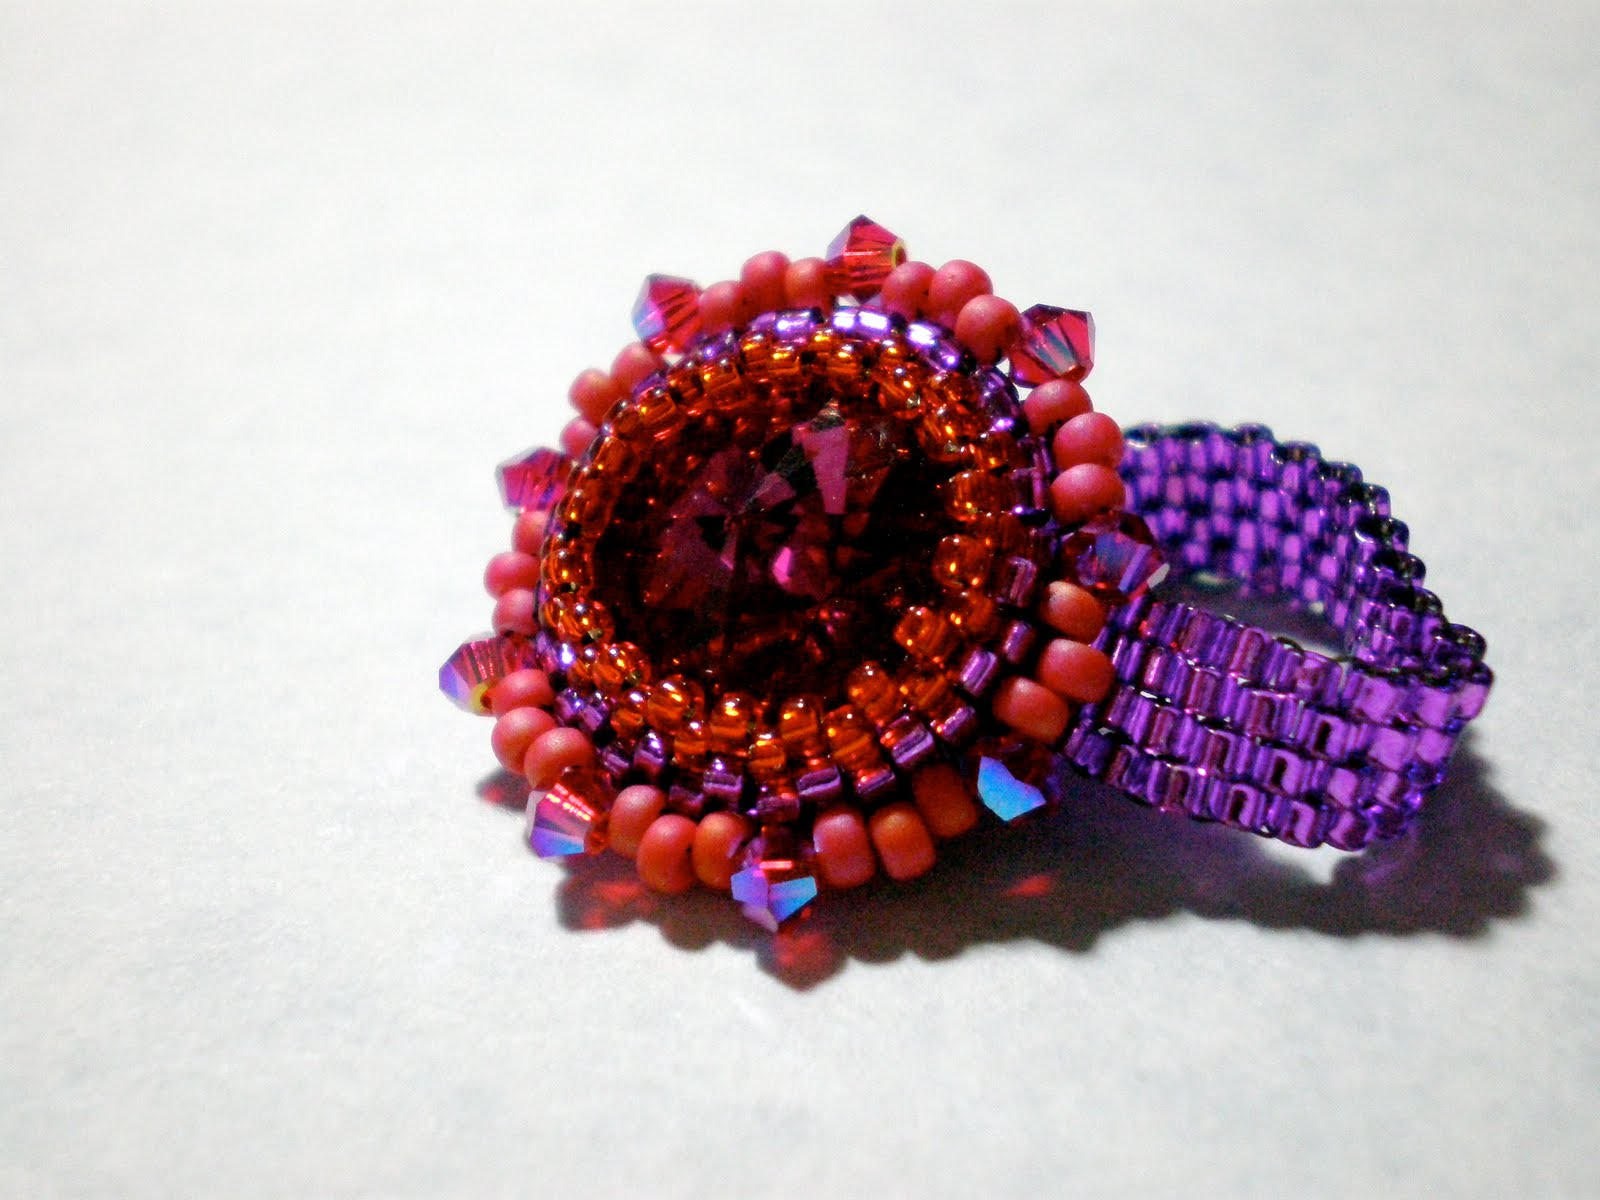 Example of a peyote stitch ring - peyote stitch in the round, increasing and decreasing, even-count peyote band